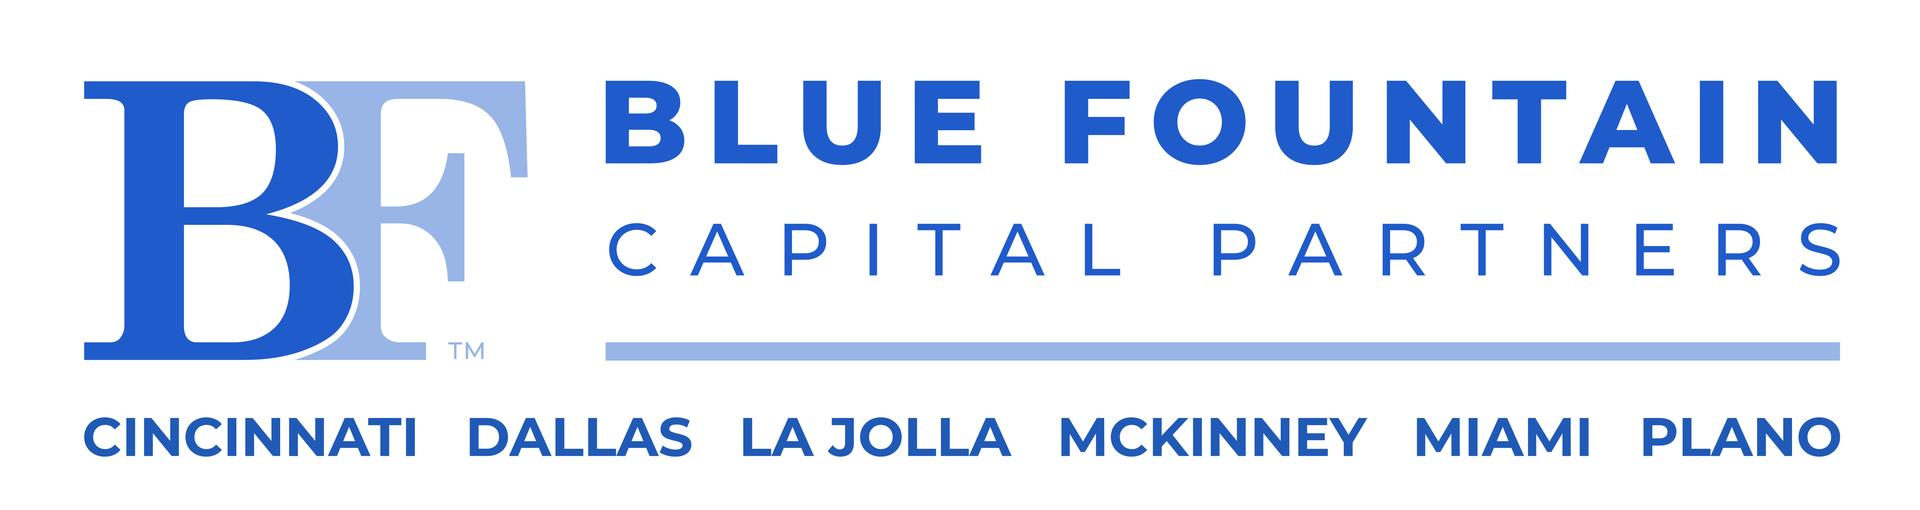 Blue Fountain Capital Partners